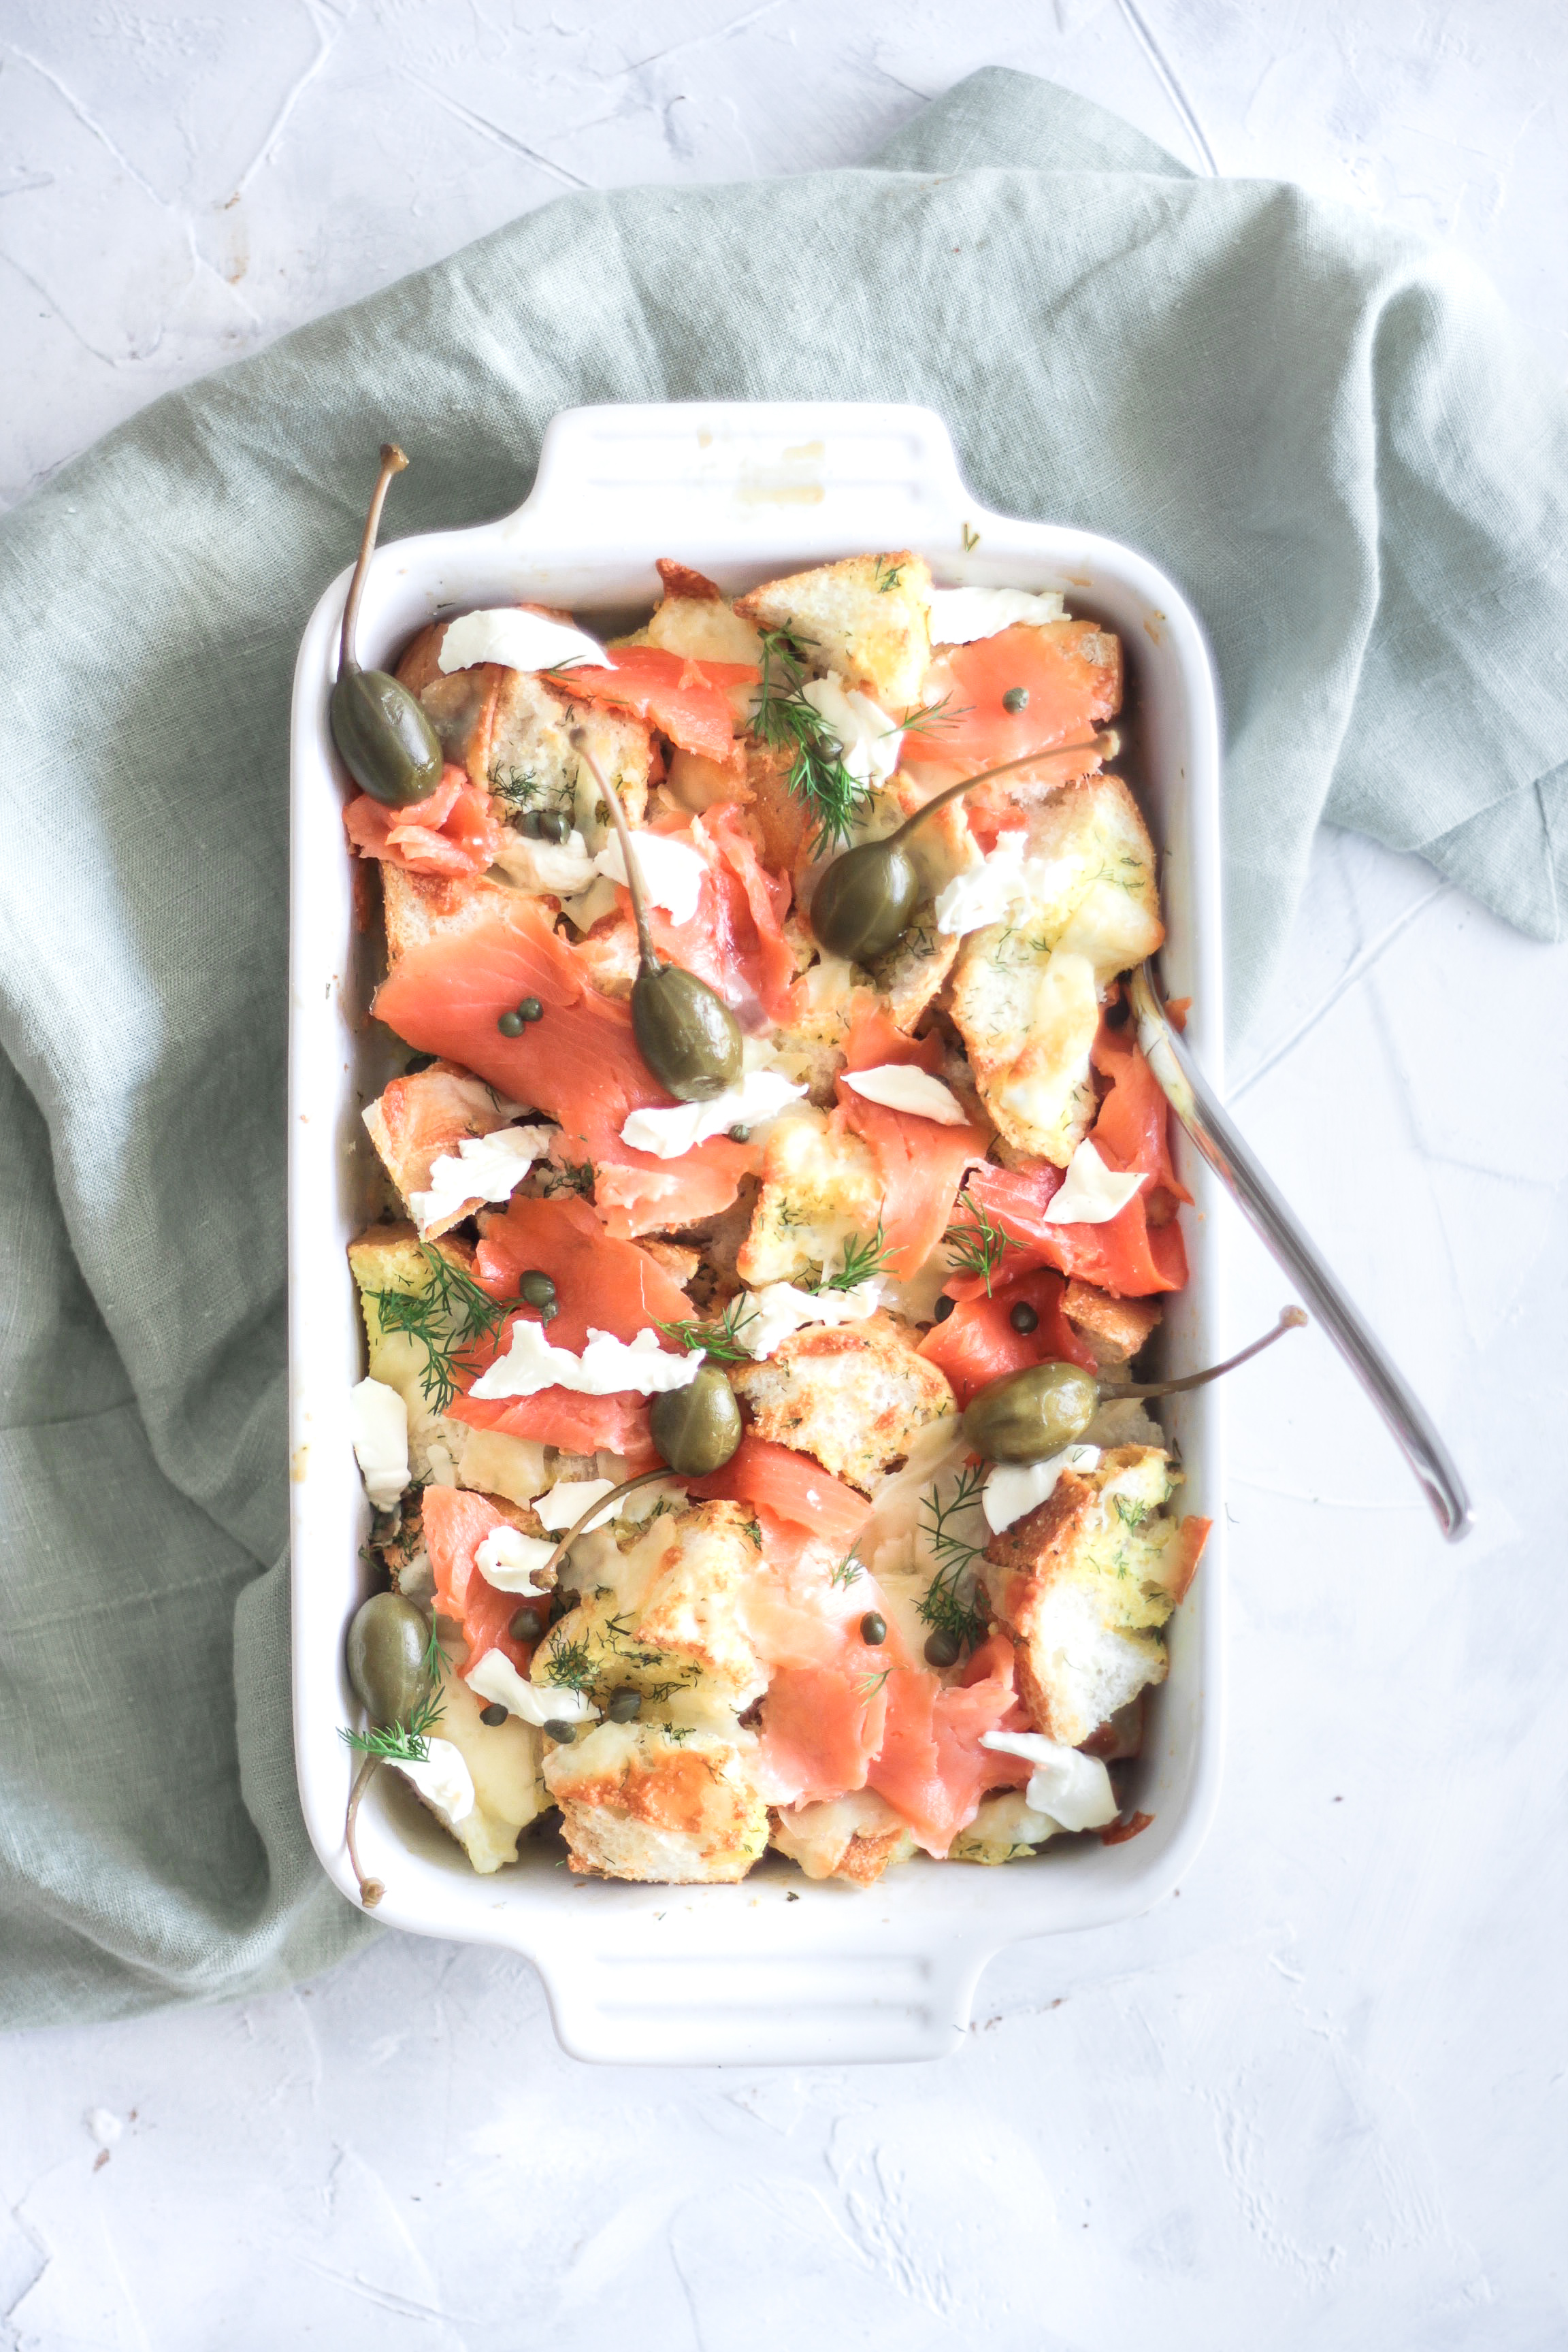 Savory Smoked Salmon and Caper Bread Pudding